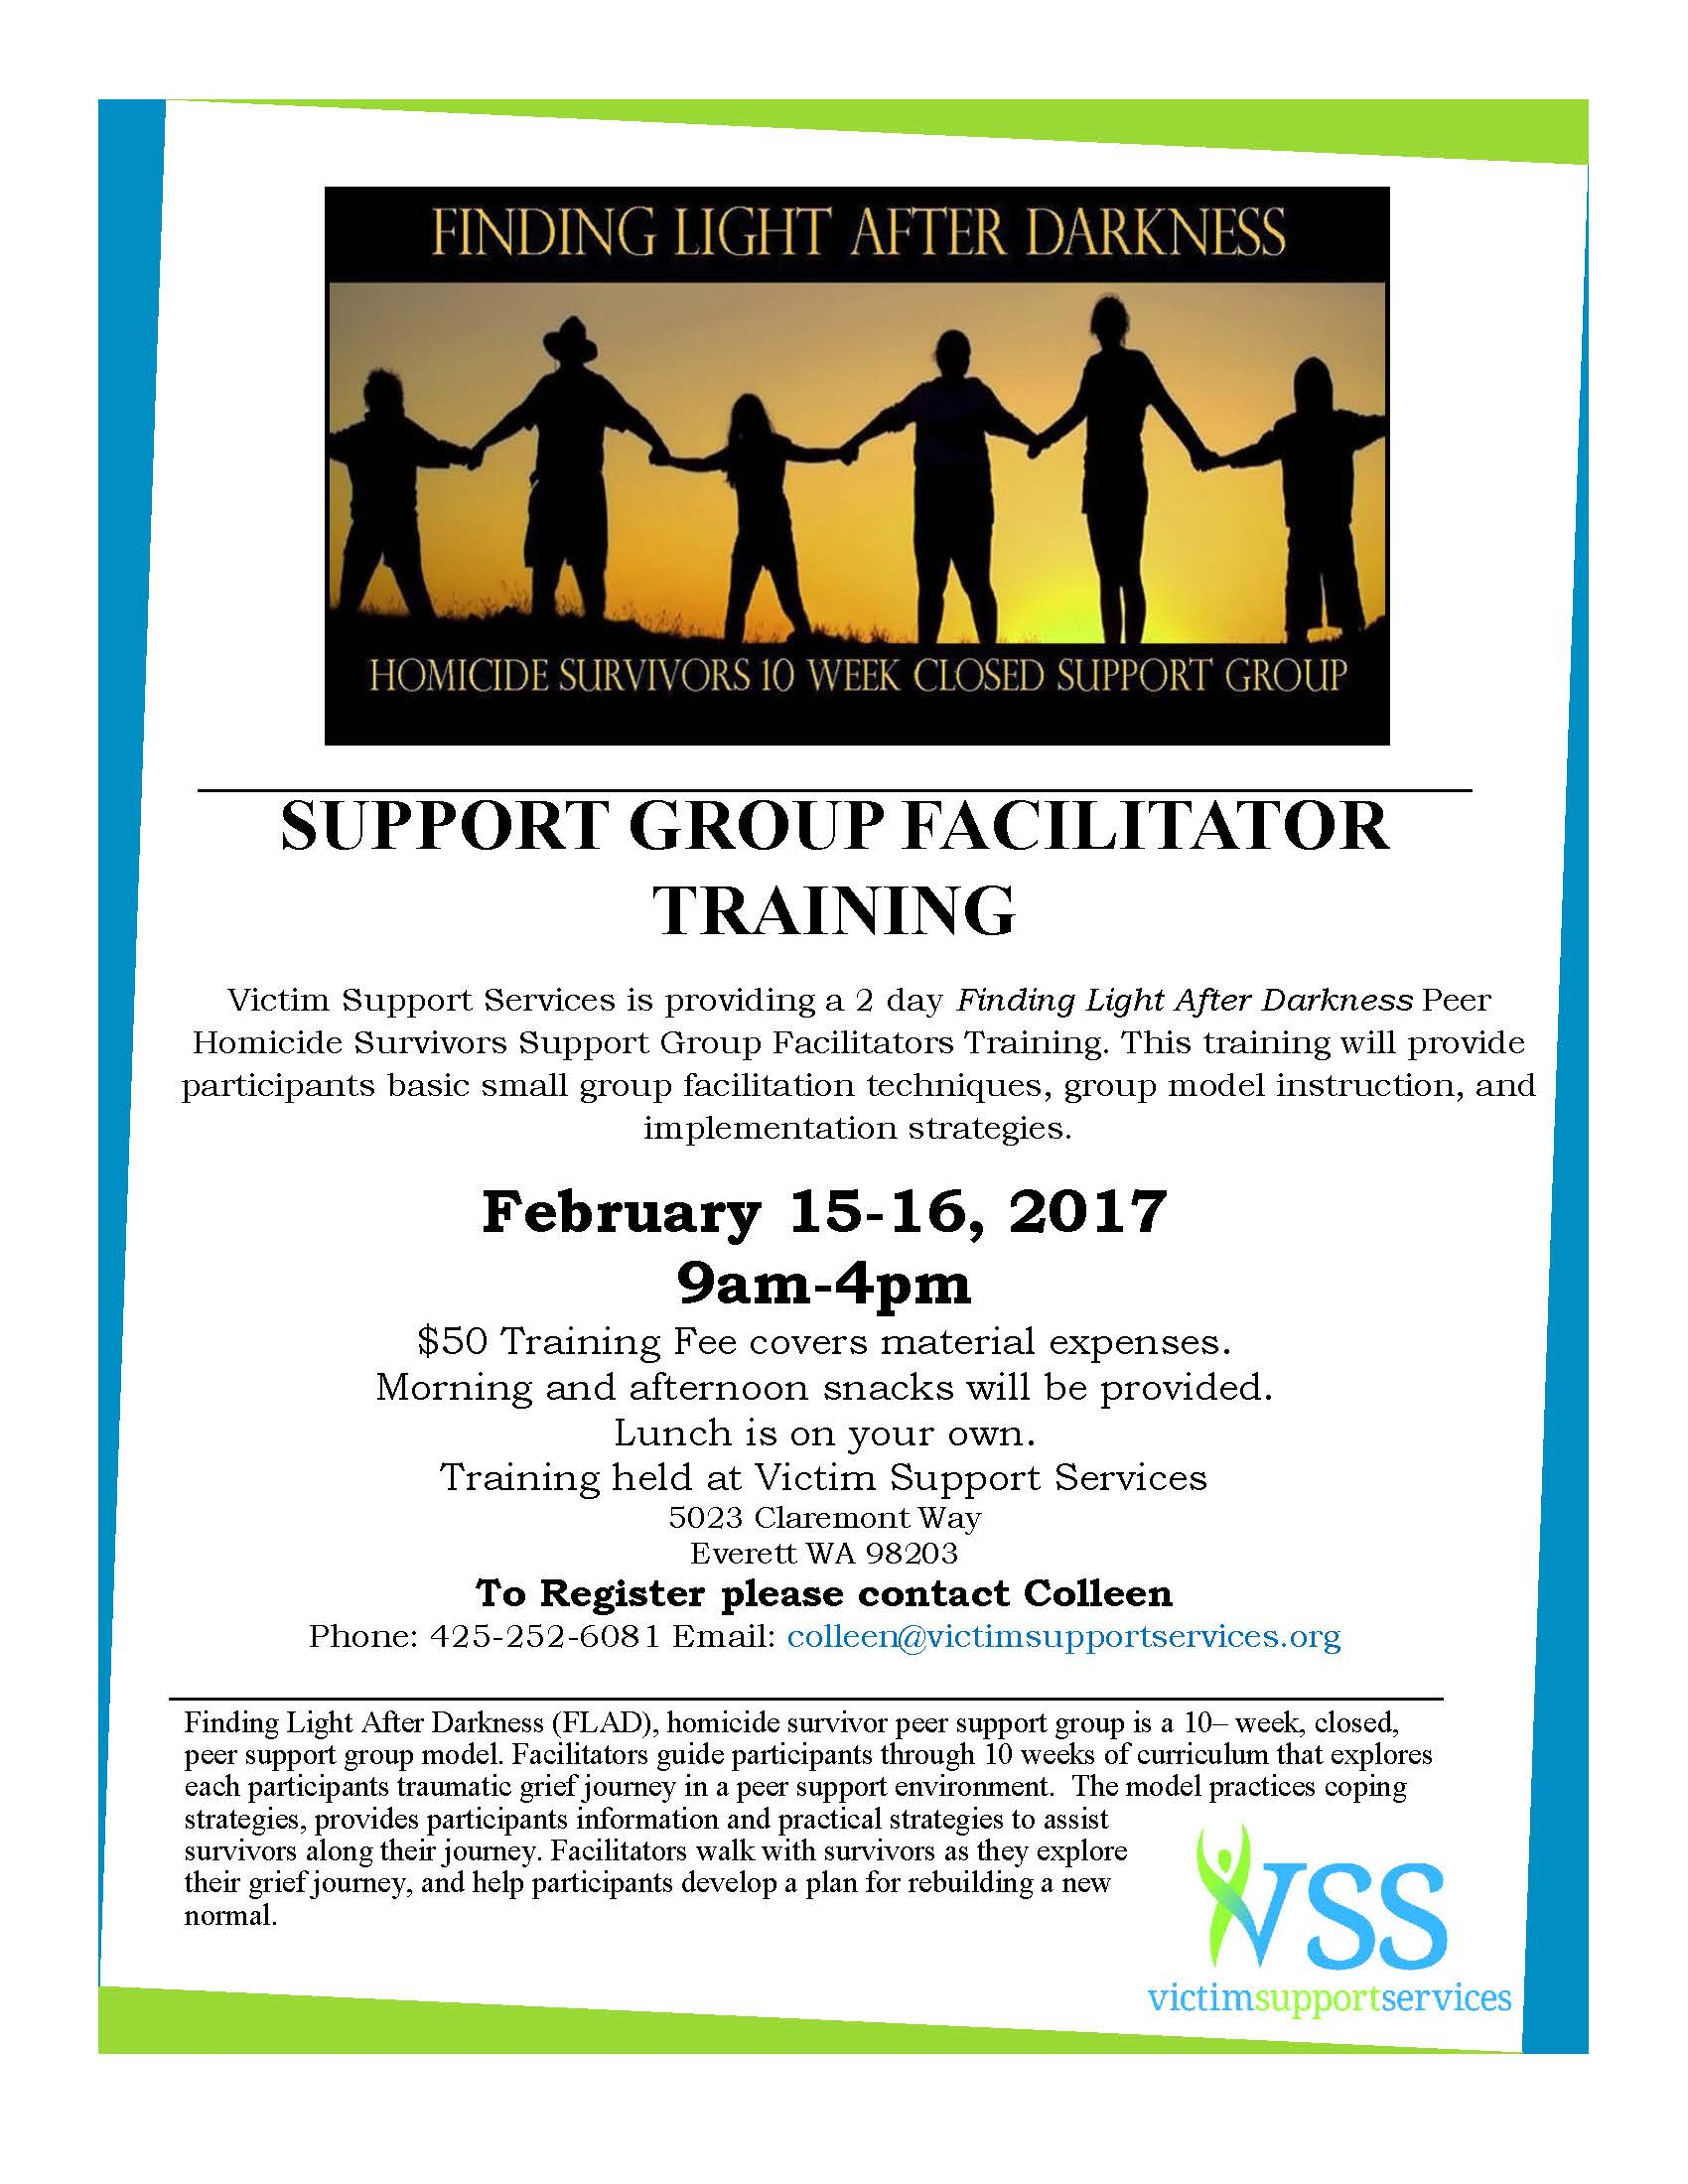 Support Group Facilitators Training Flyer February 2017